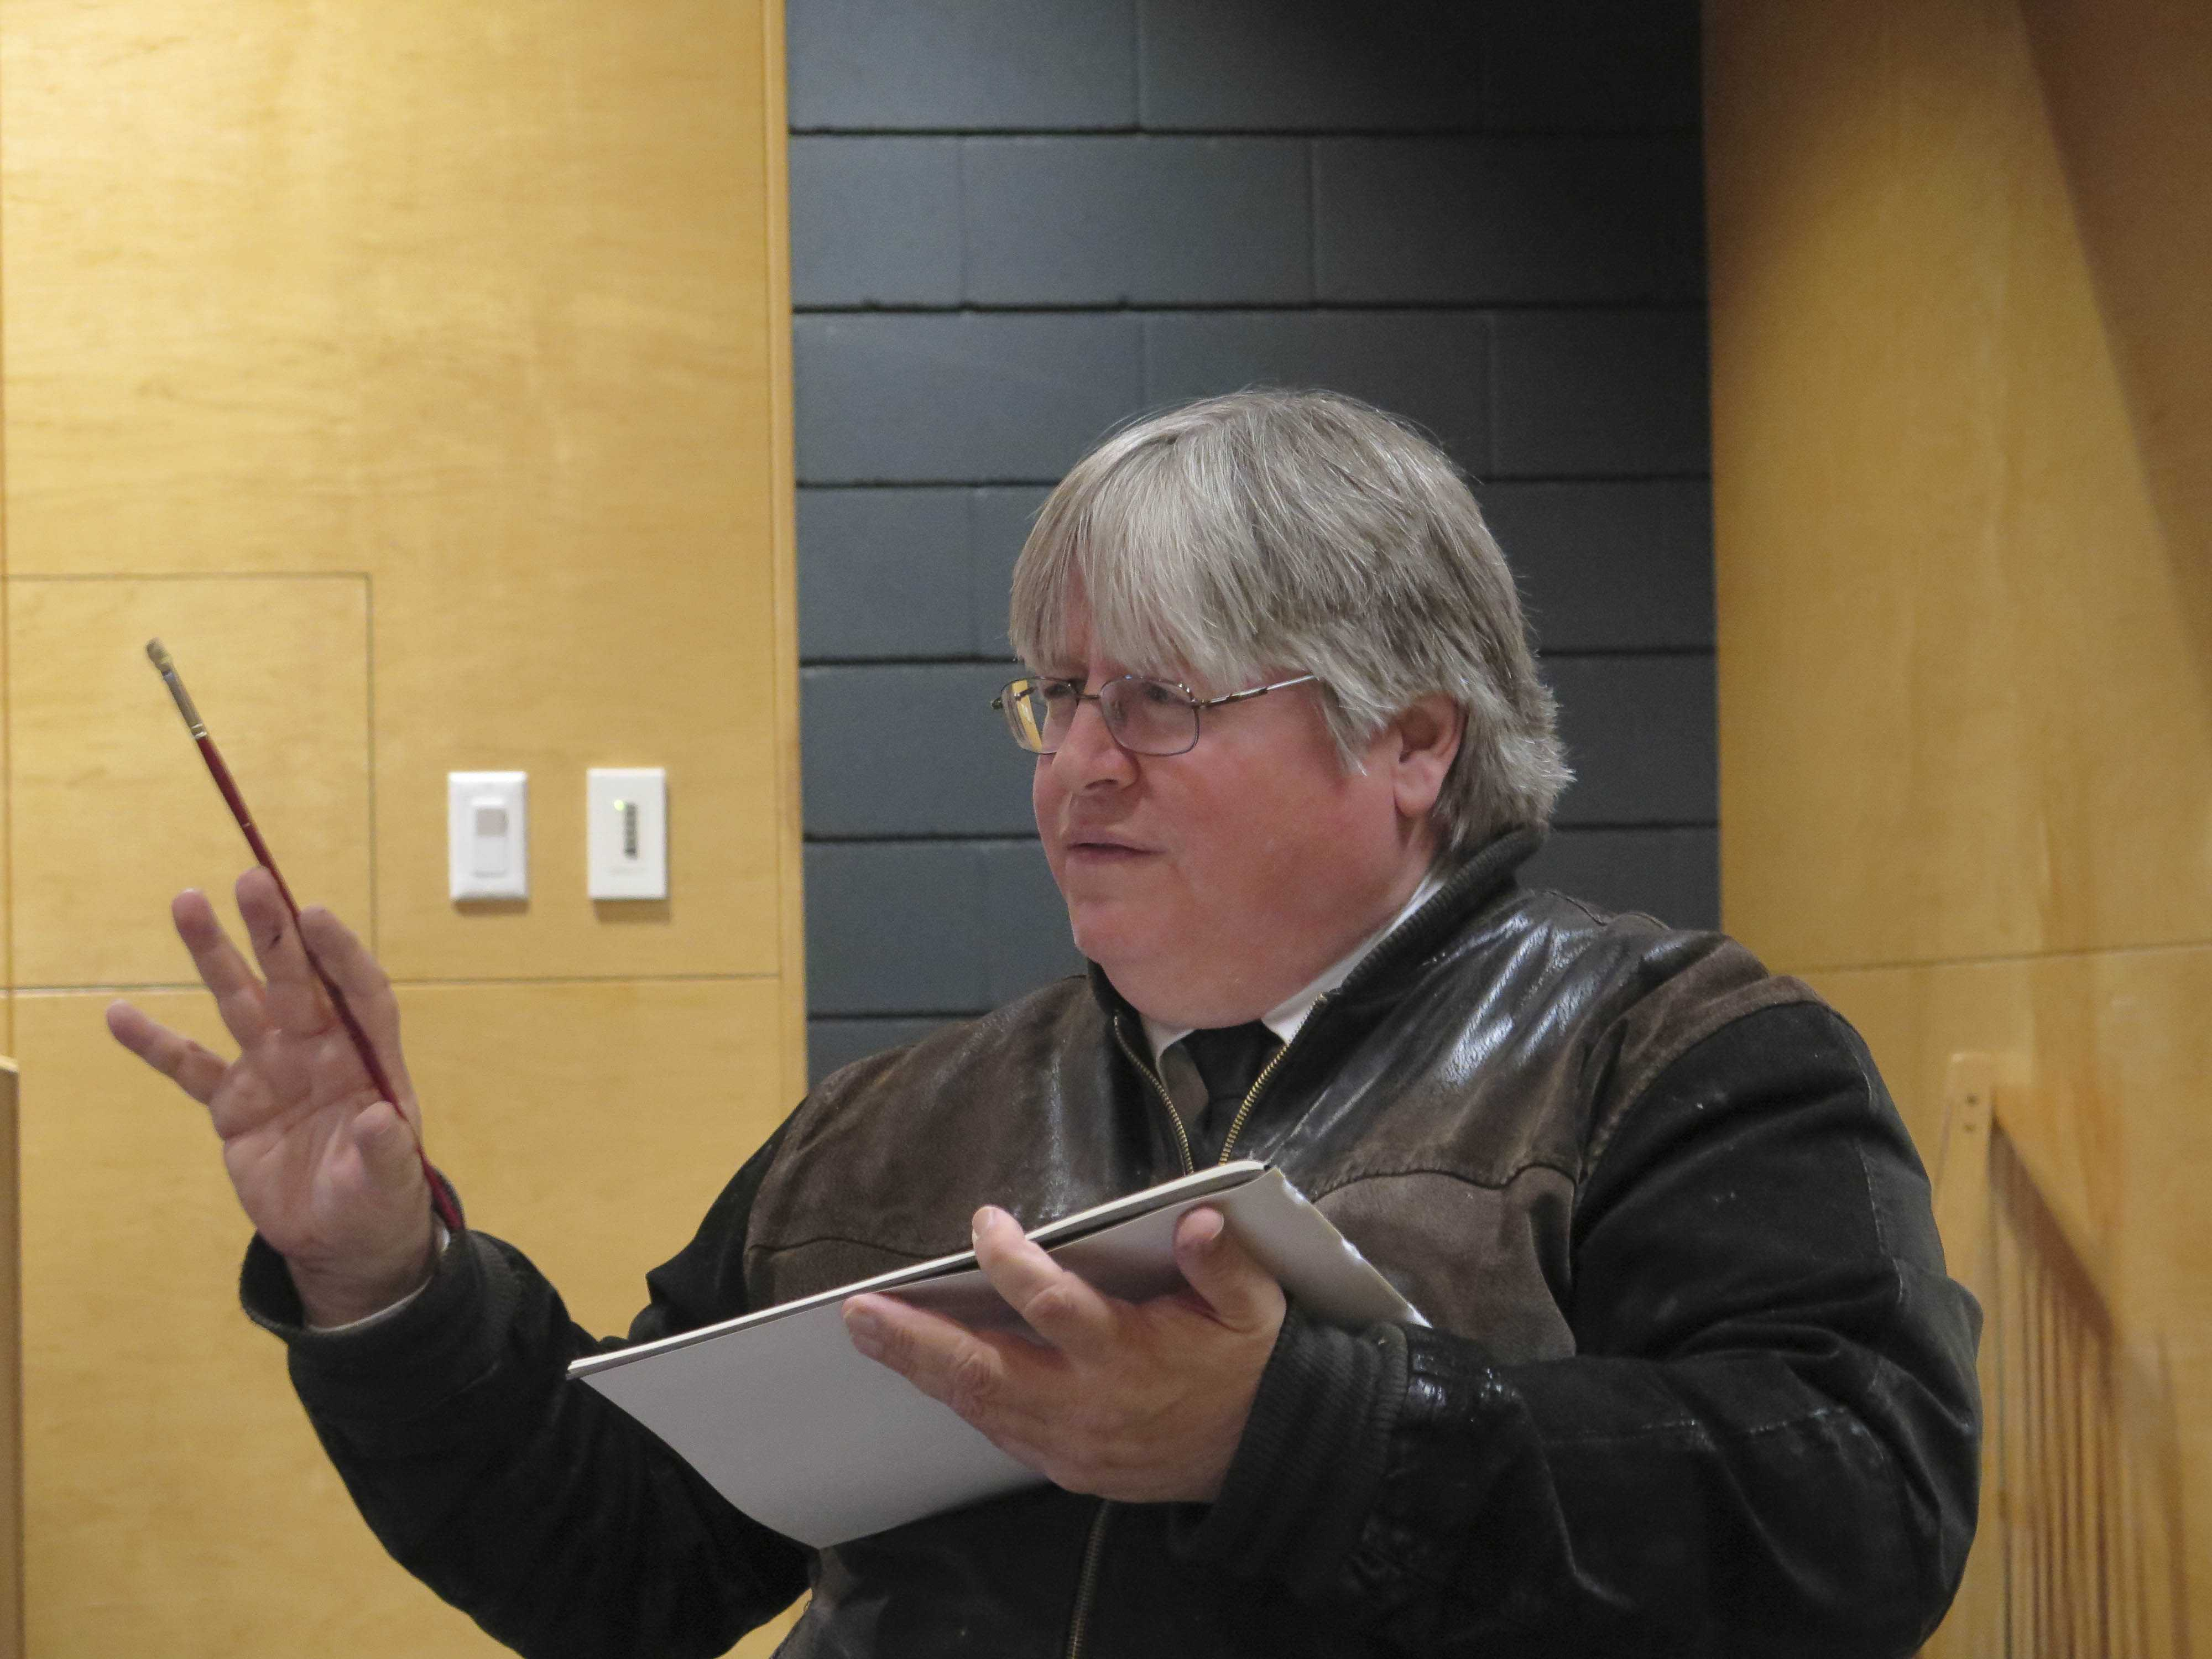 Edward Hummingbird, director of Institutional Research and Planning at the Southwest Indian Polytechnic Institute, who delivers a talk Wednesday in conjunction with AMAM exhibition Exploring Reciprocity: The Power of Animals in Non-Western Art